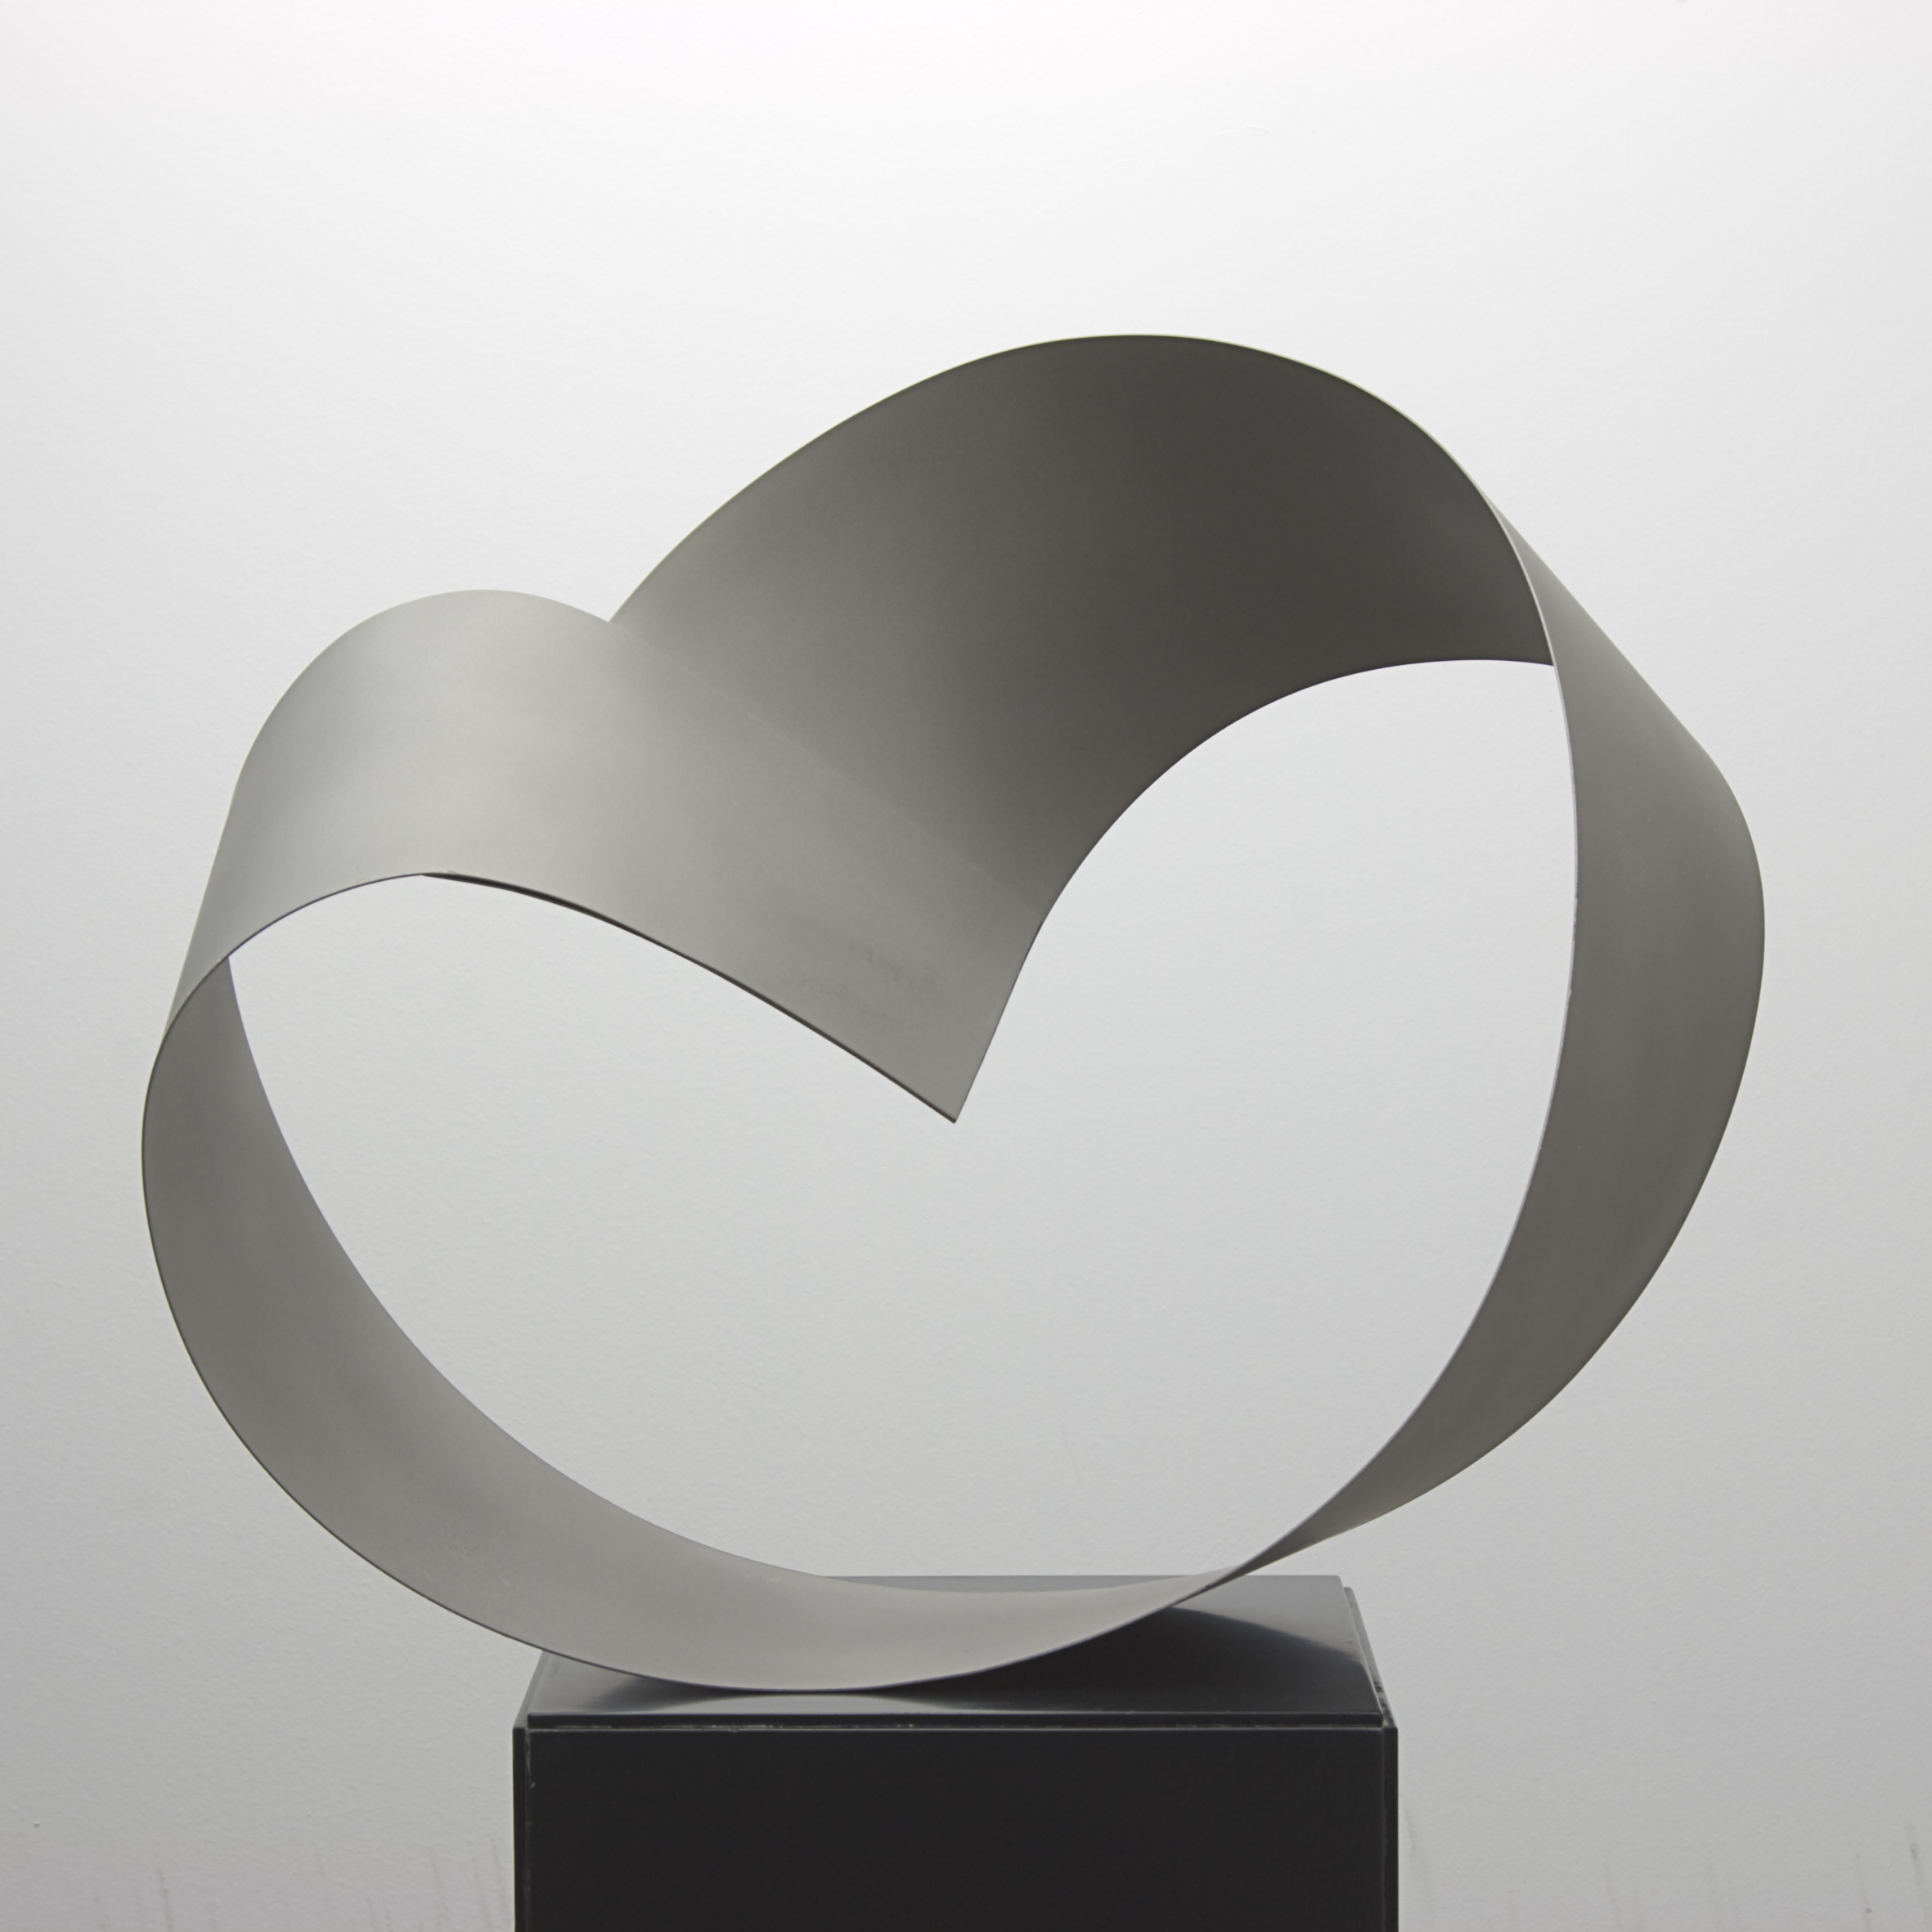 Moebius3.  2013. Stainless steel sheet. Sprayed aluminium silicate treatment. 32 x 40 x 24 cm.